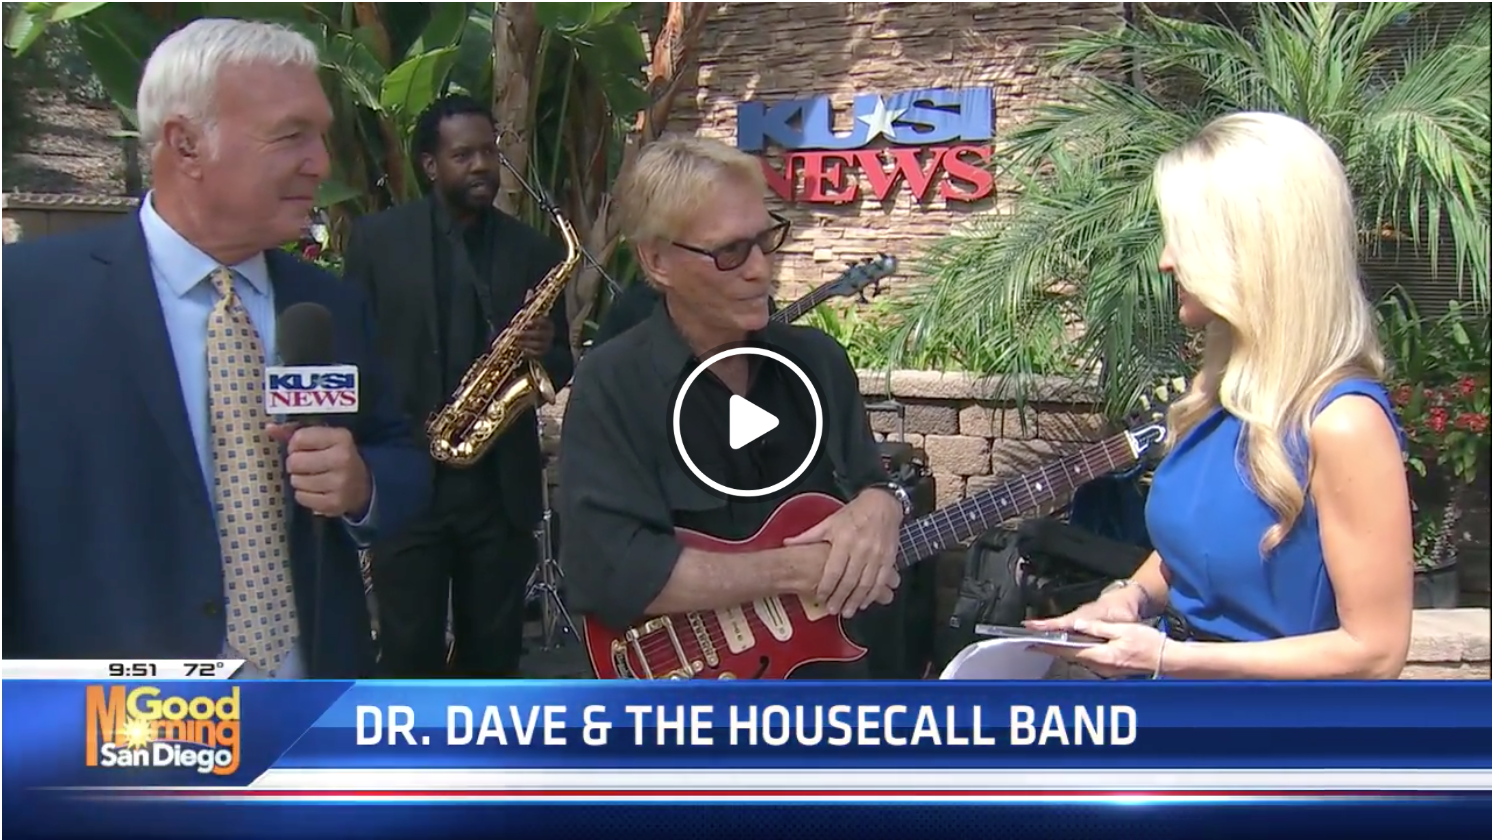 Dr. Dave & The HouseCall Band on KUSI News